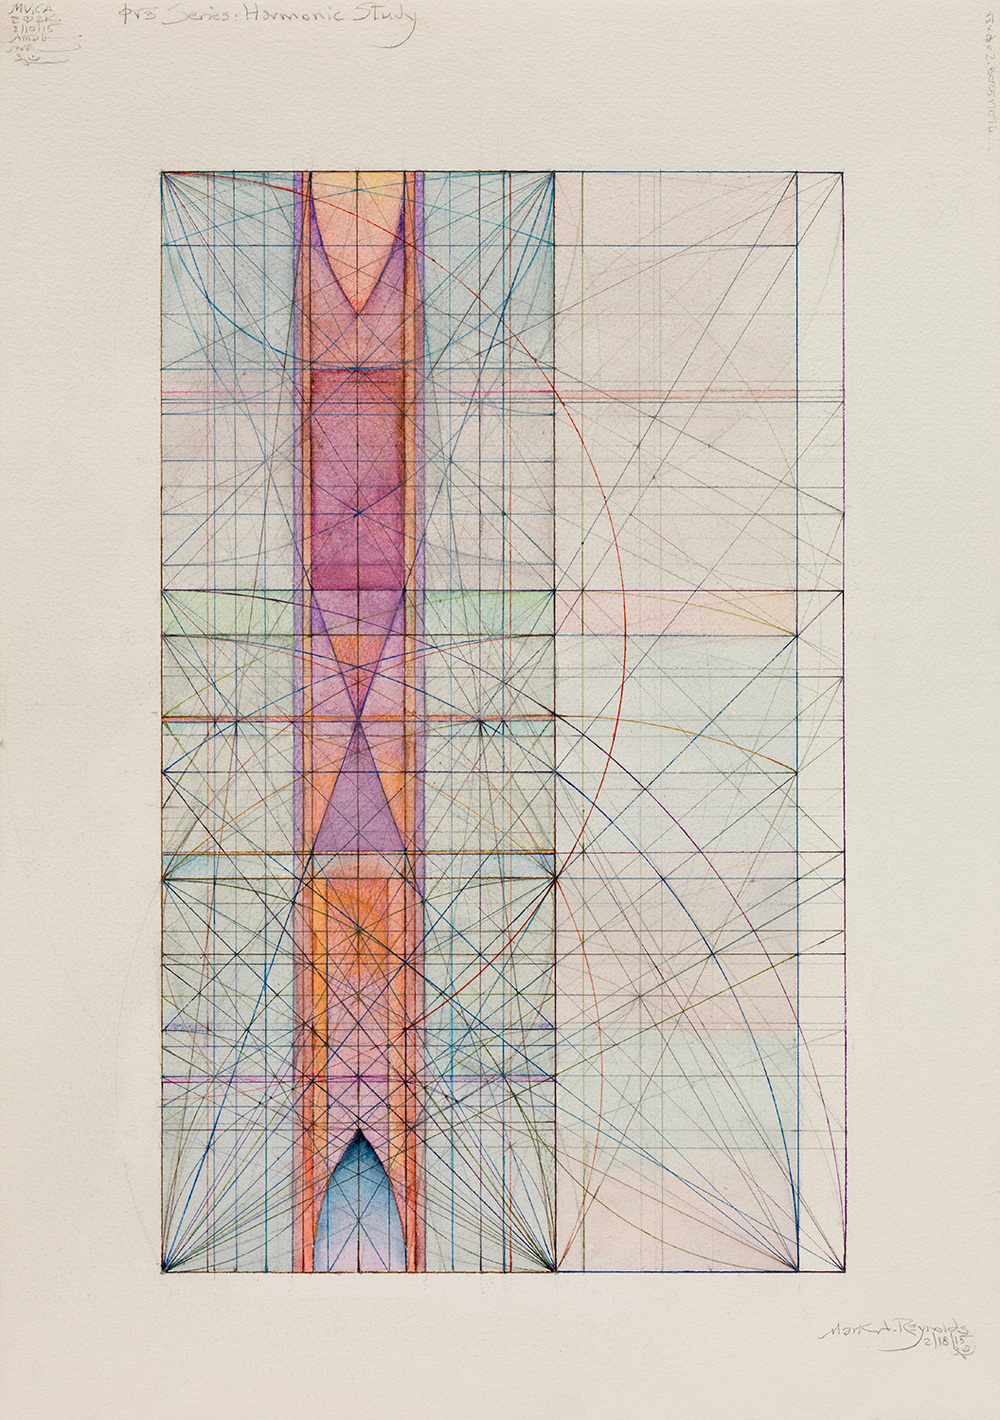 Phi Root Three Series with the Rho Rectangle (2.8025).2.18.15, 2015   5.5 in. x 10.25 in. (Sheet size: 22 in. x 15 in.) Colored ink, graphite, and watercolor on cotton paper